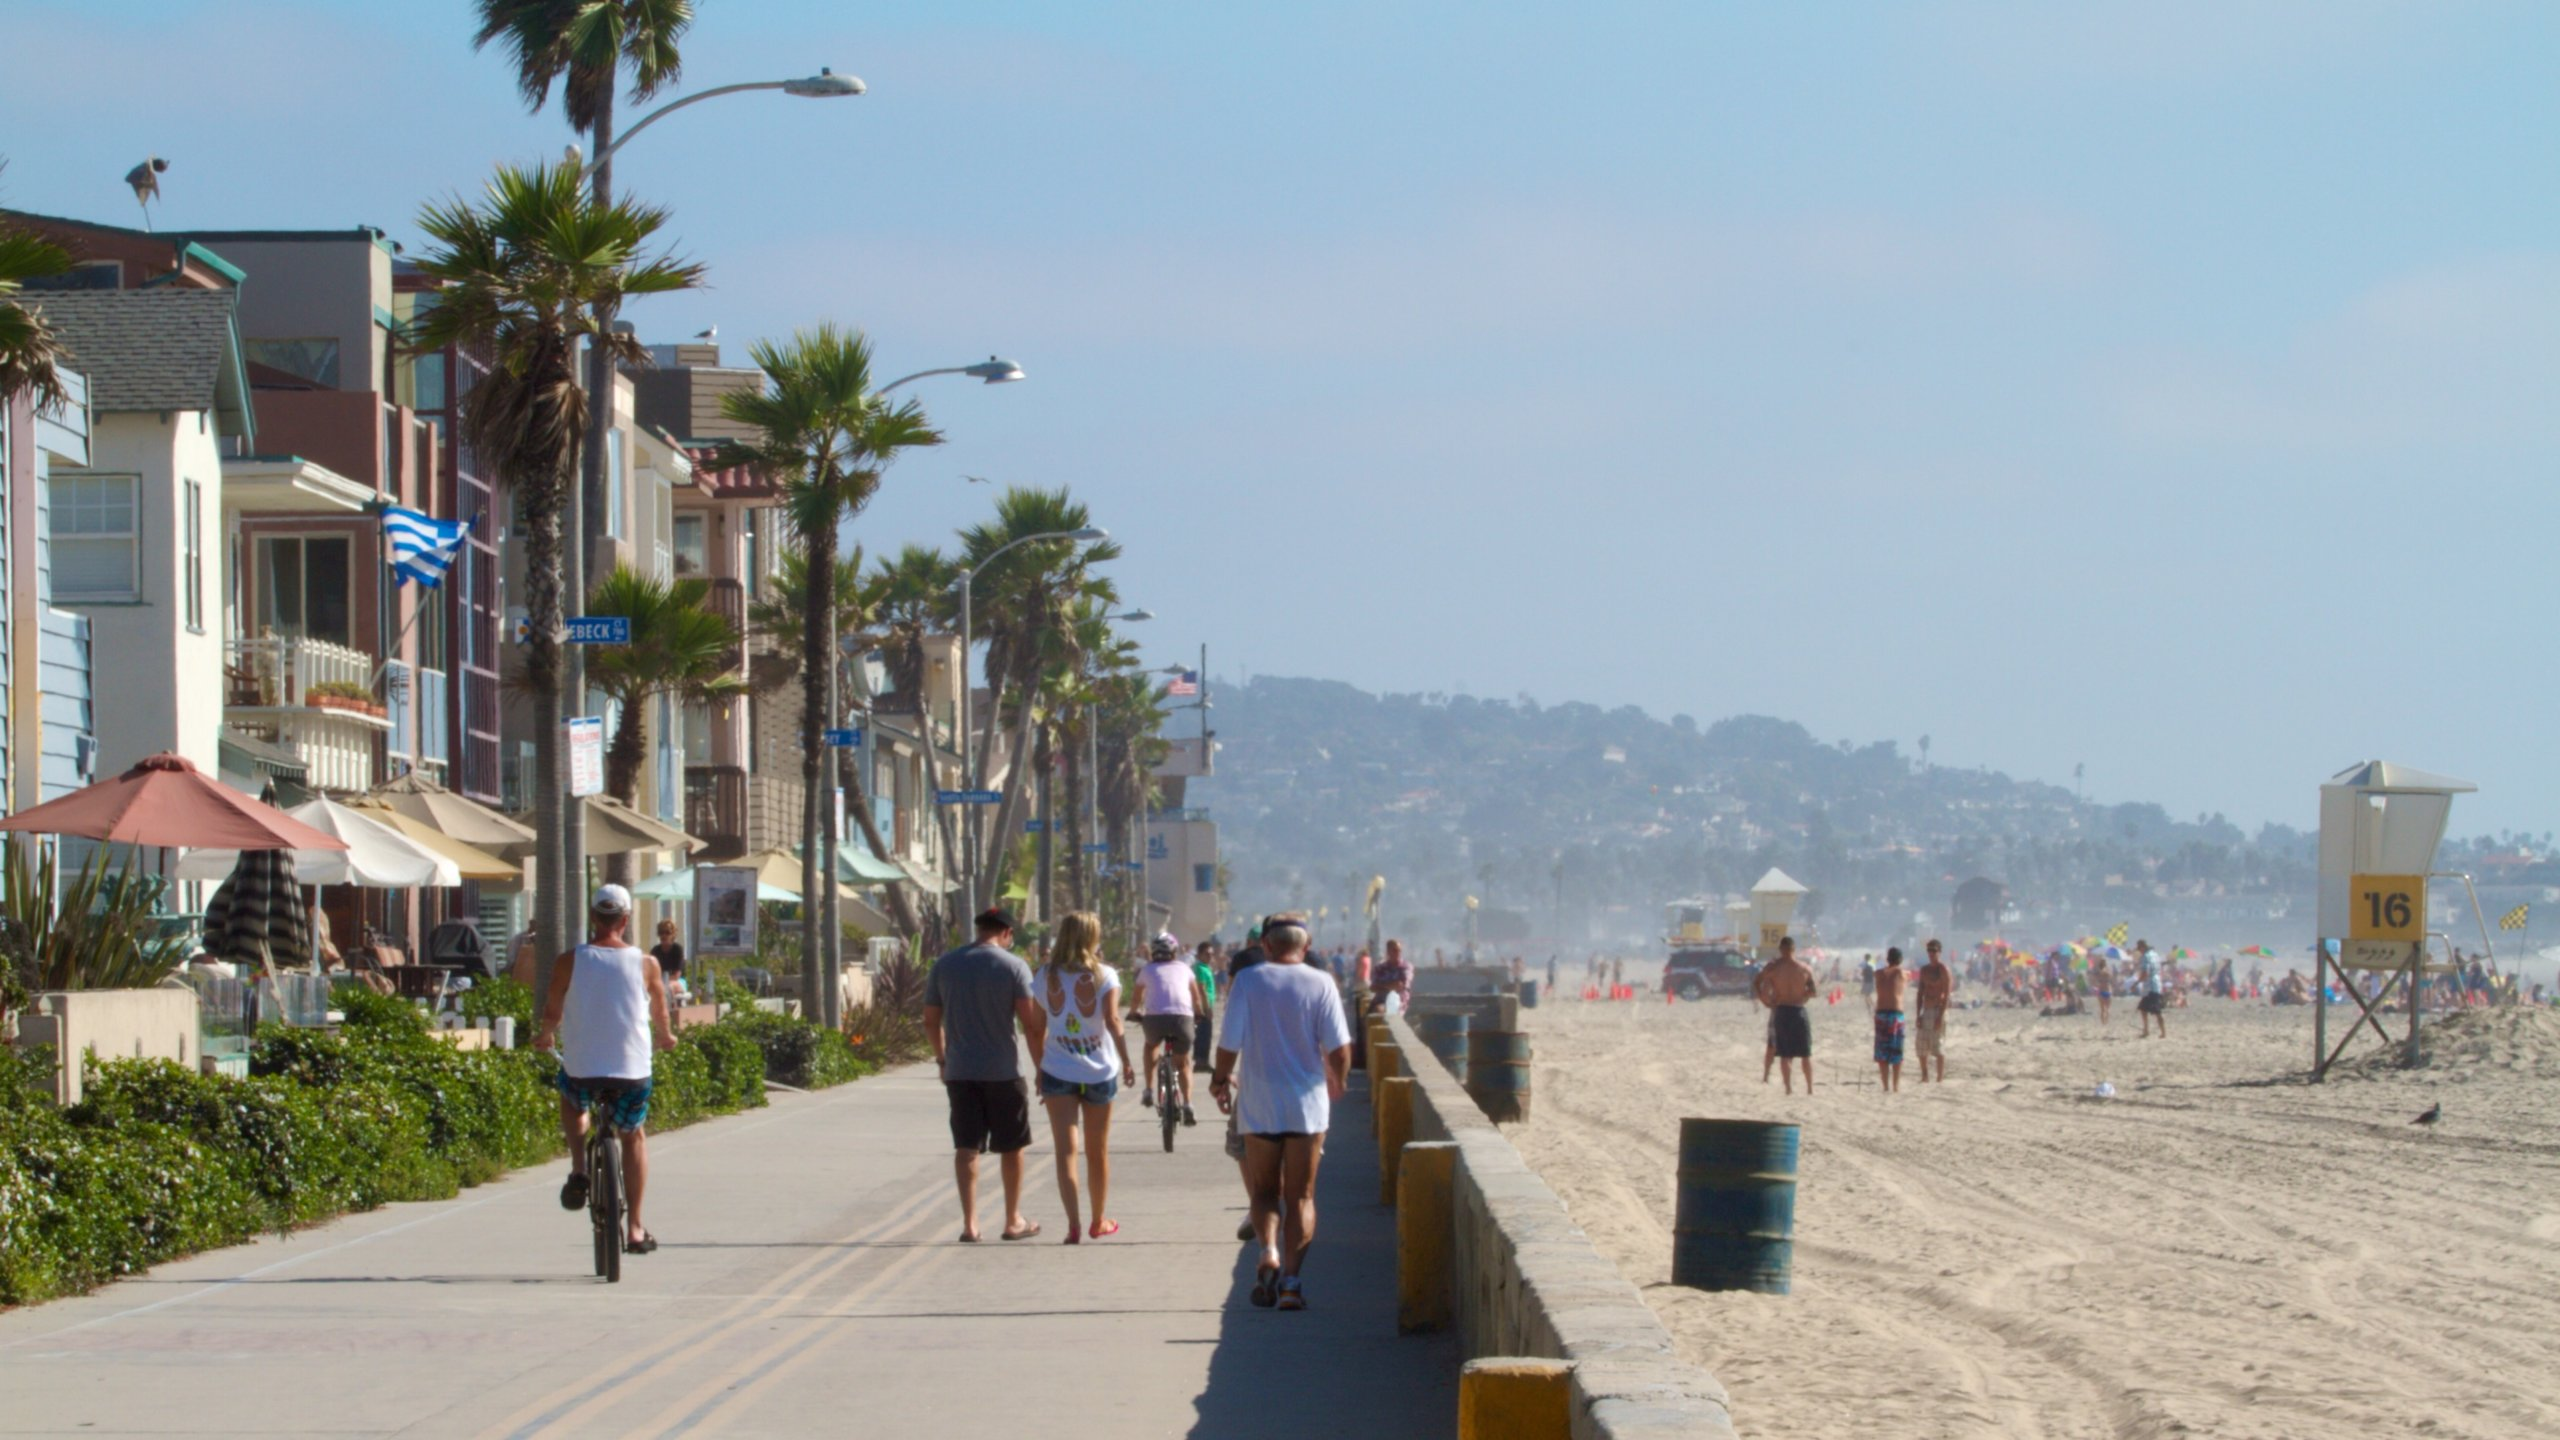 Central Mission Beach, San Diego, California, United States of America